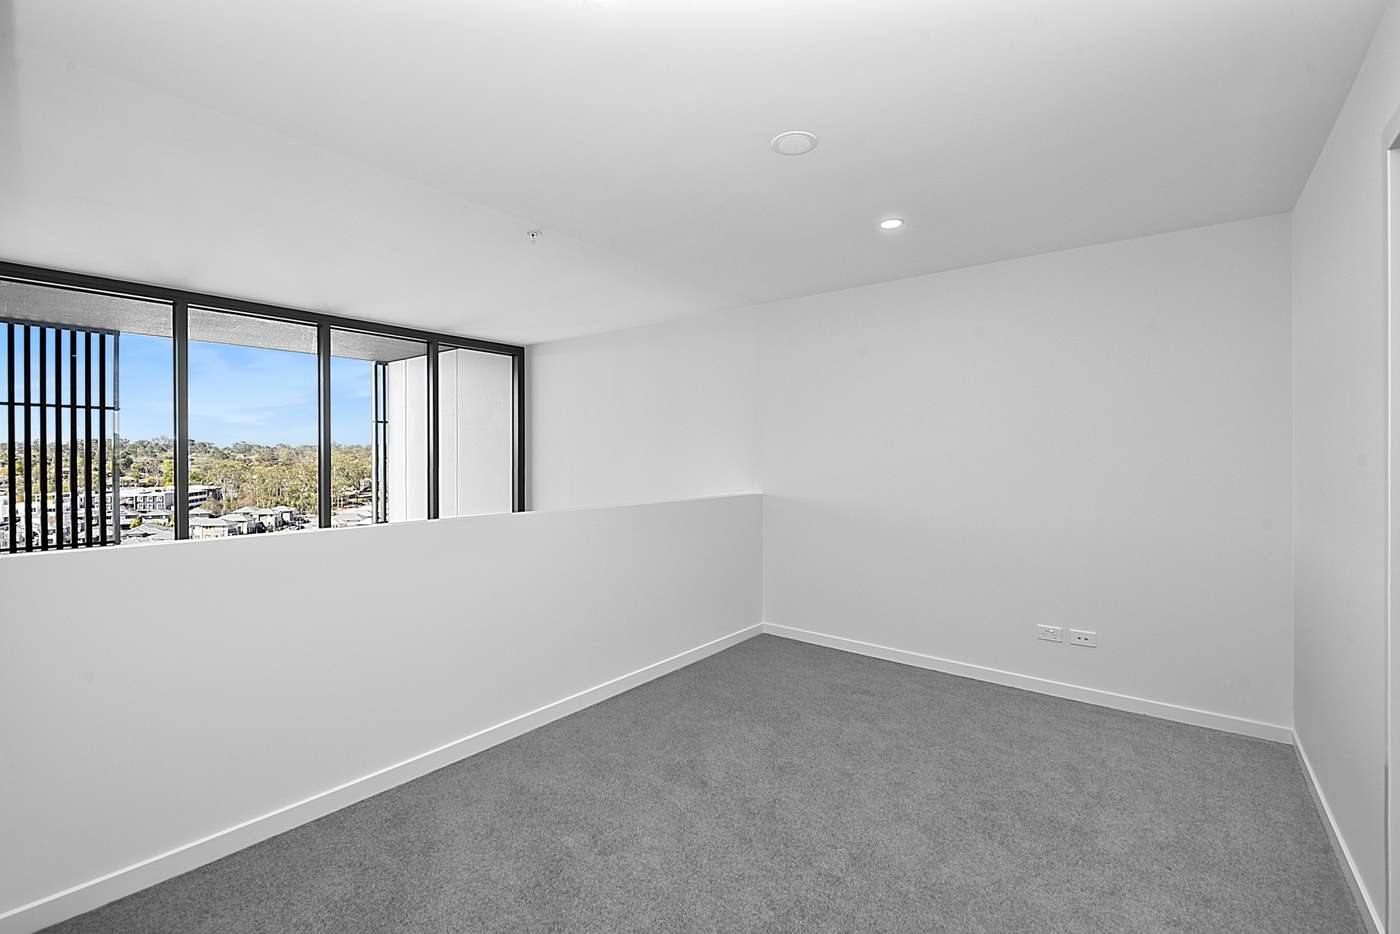 Sixth view of Homely apartment listing, 1006/10 Aviators Way, Penrith NSW 2750